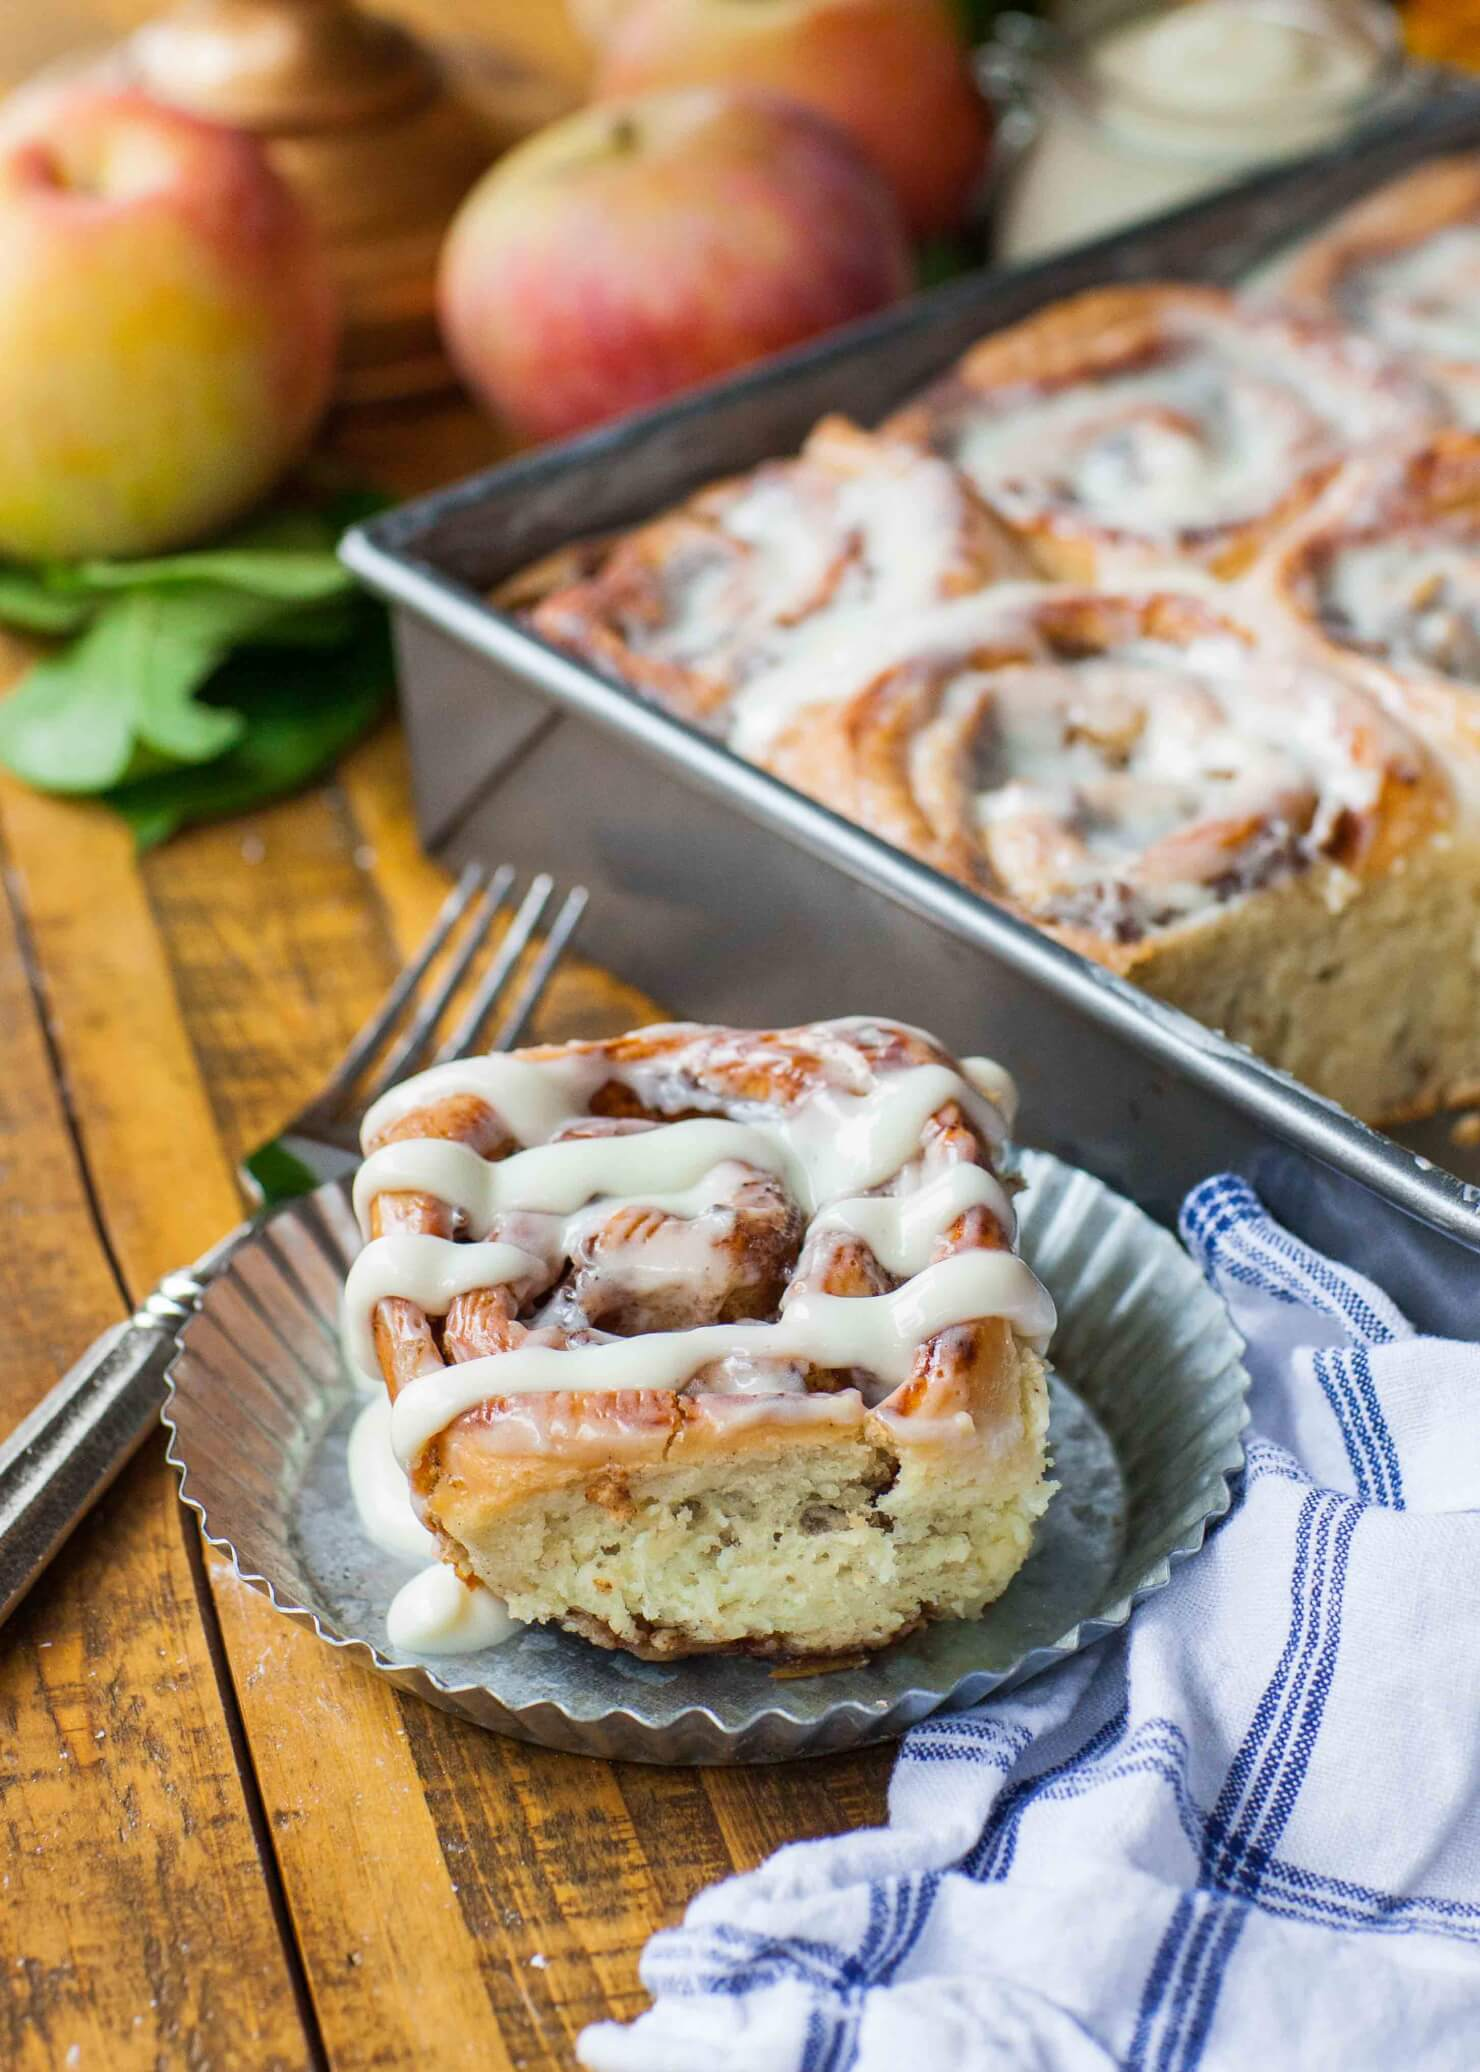 cinnamon roll close up with apples